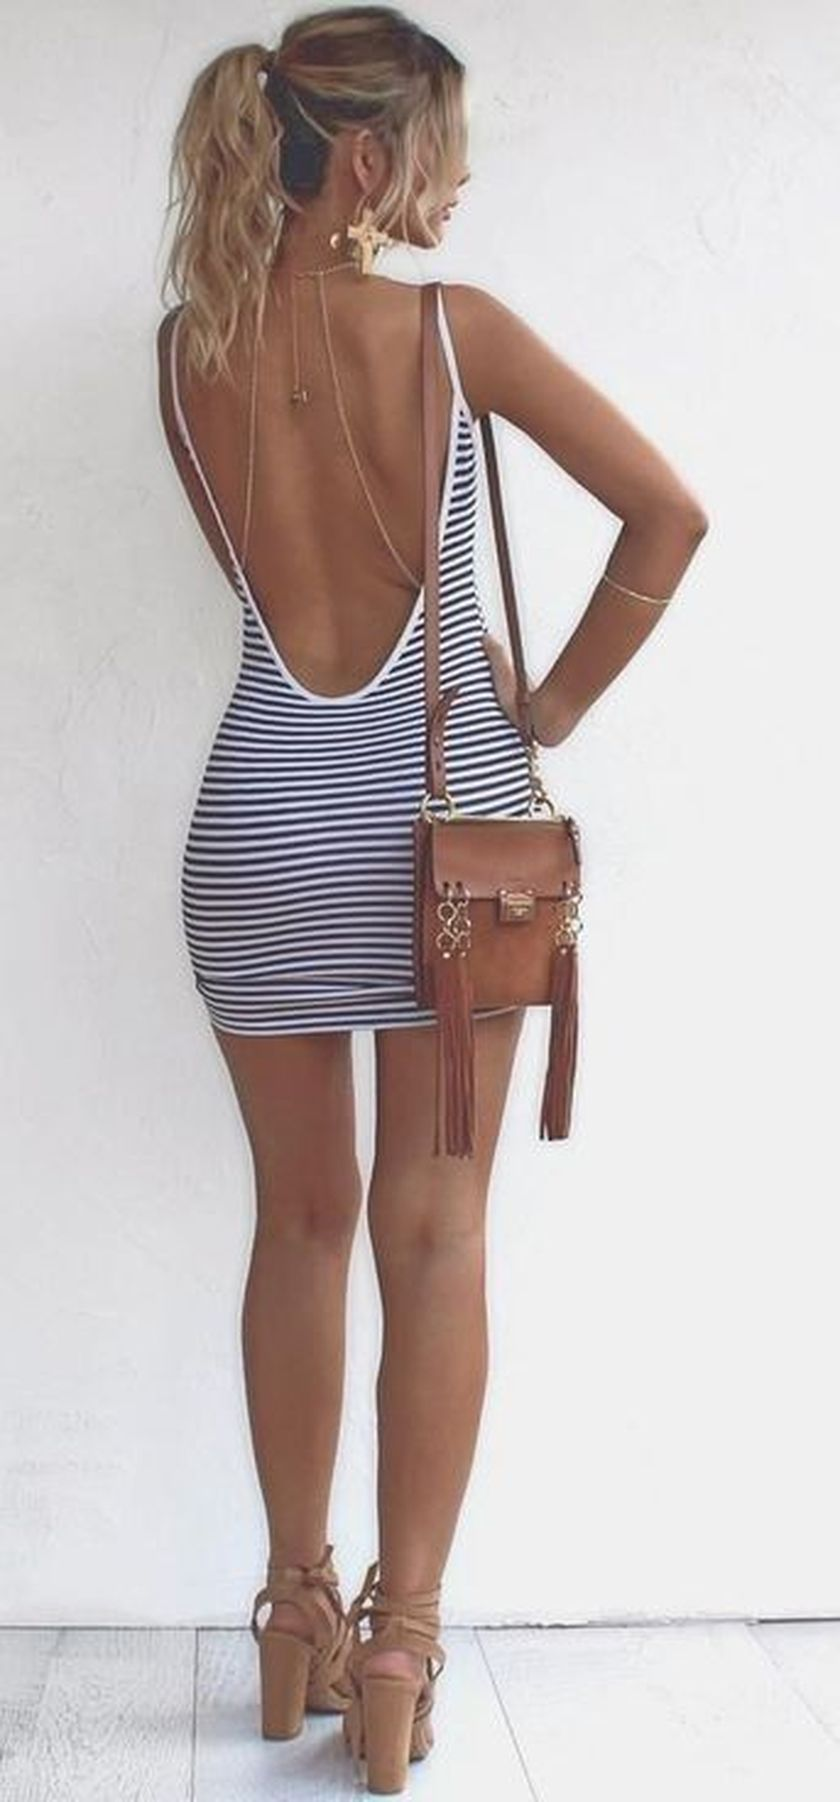 Summer Casual Backless Dresses Outfit Style 10 Fashion Best